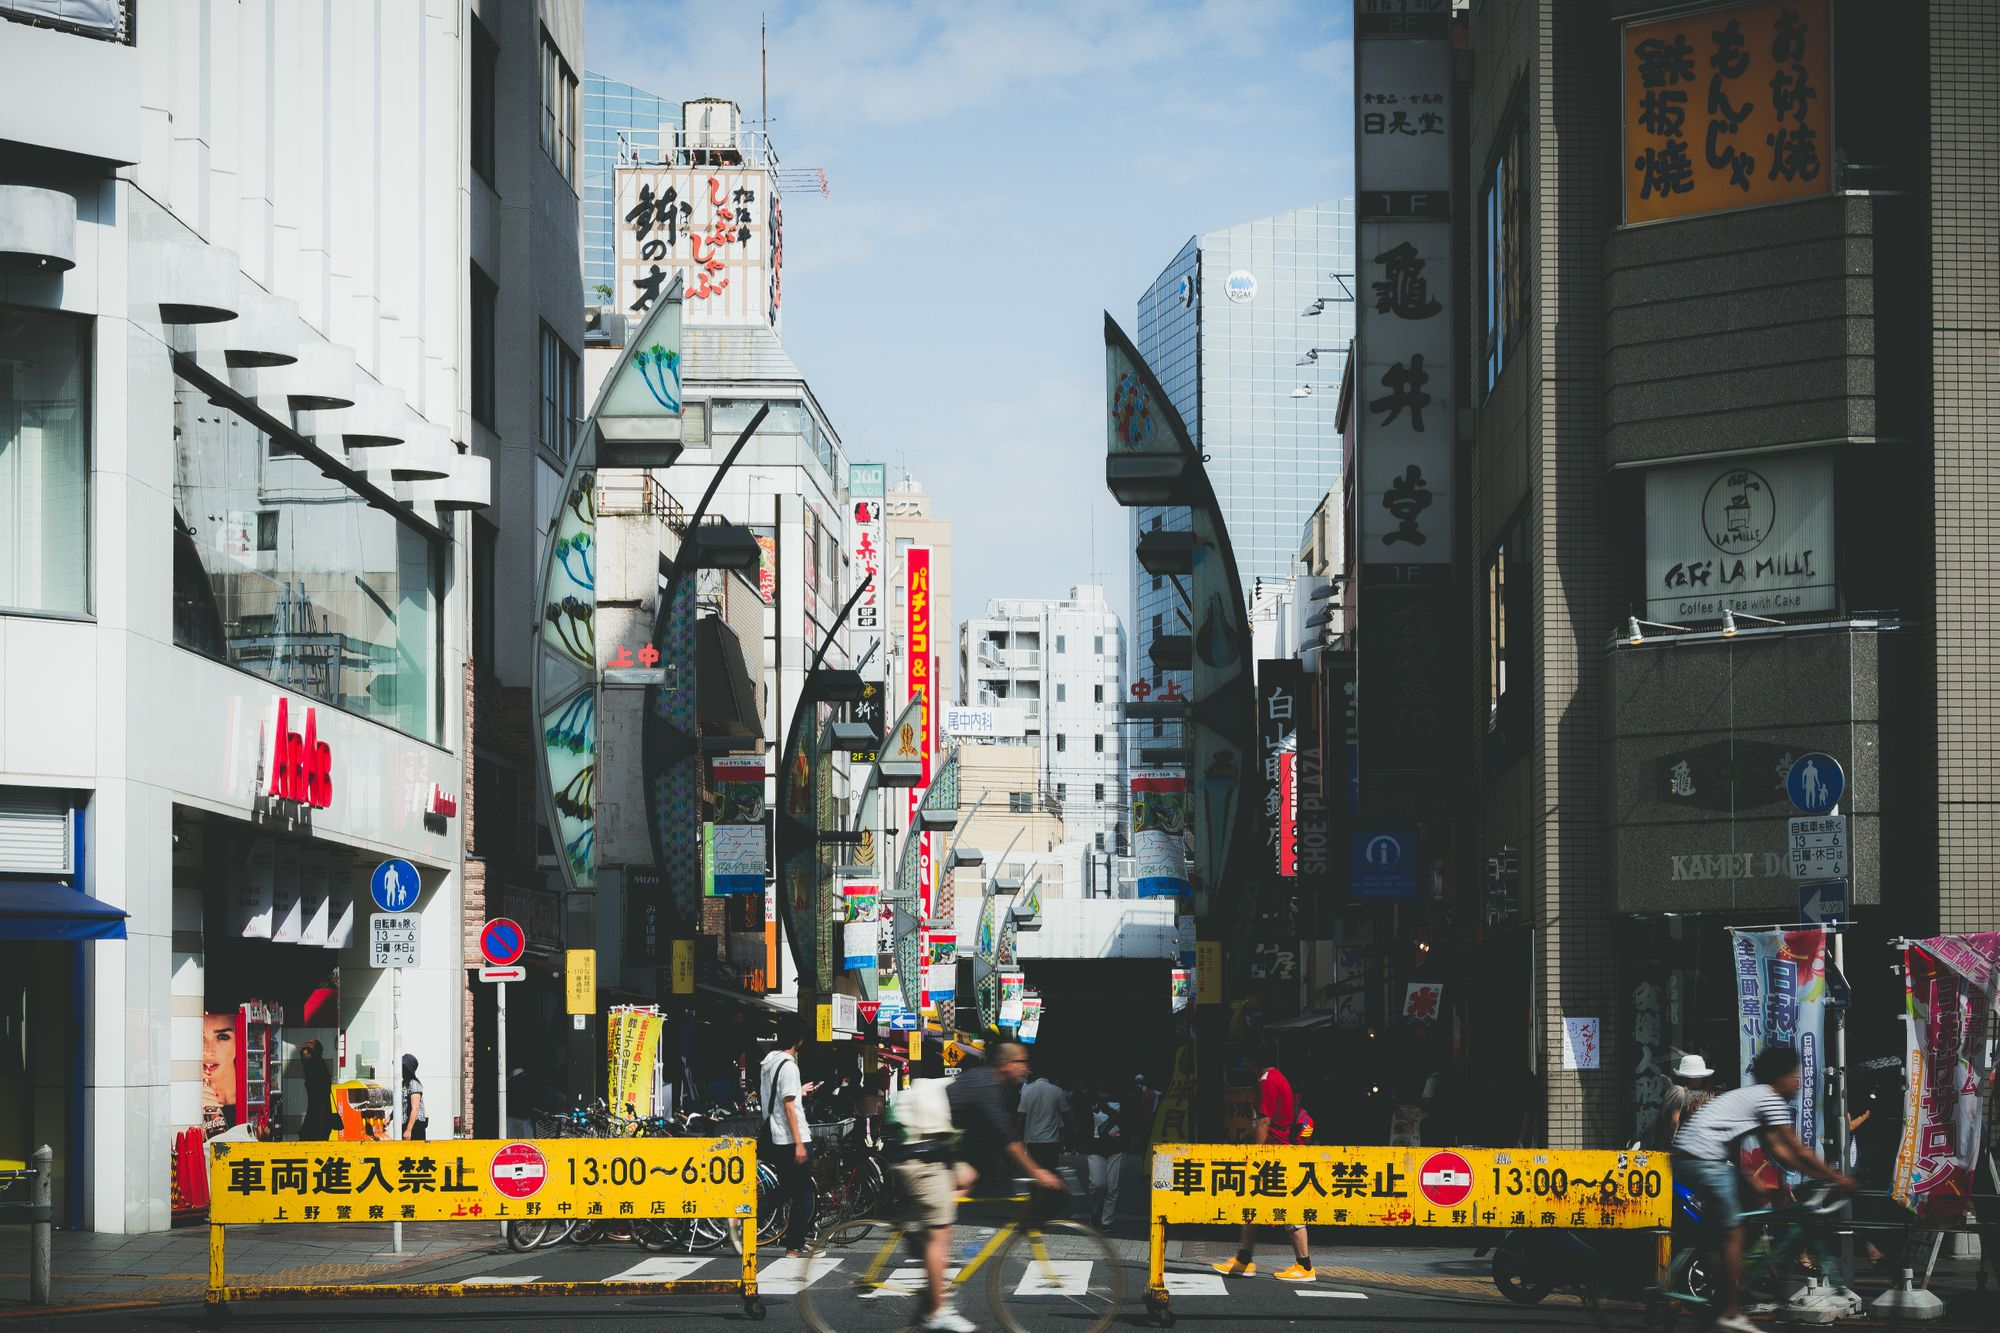 Ask A Trip Designer: What's The Best Way To Exchange/Withdraw Money In Japan?